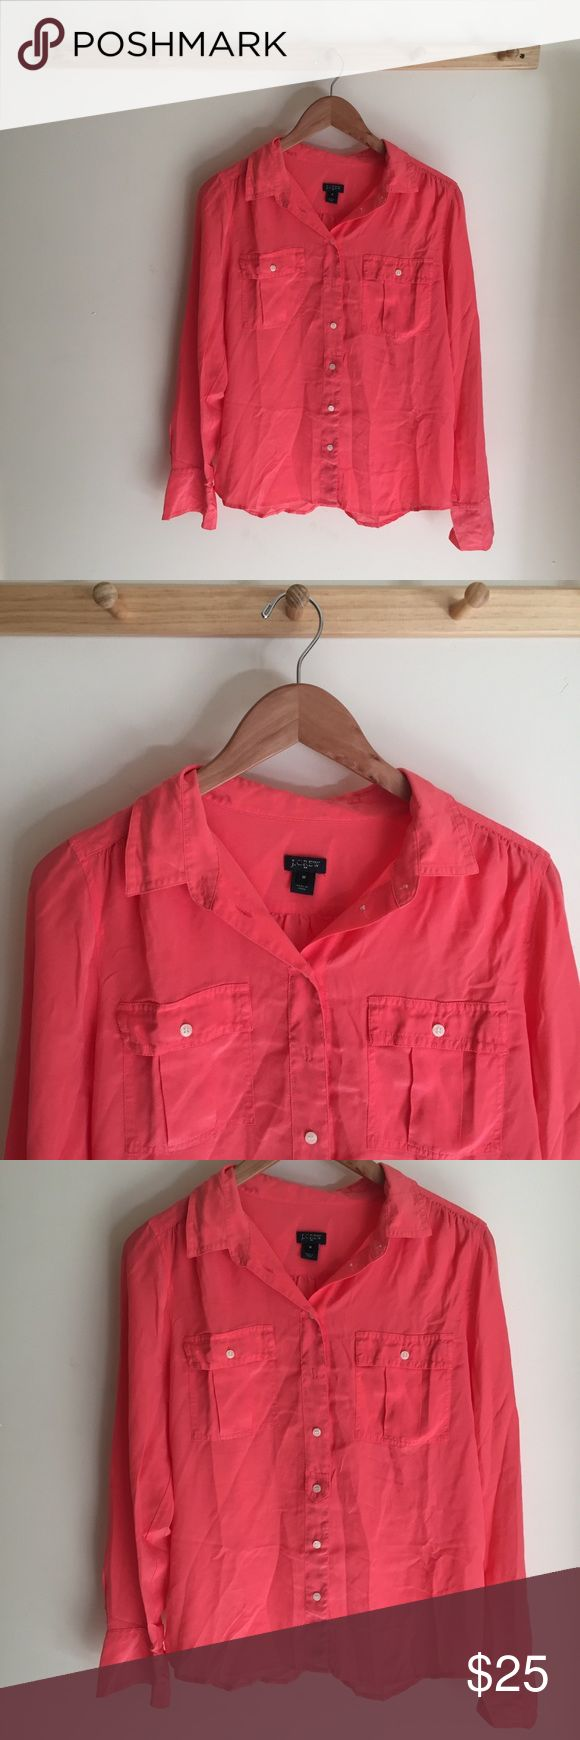 J. Crew Blythe 100% Silk Pink Coral Blouse Medium In great condition! J. Crew Tops Blouses